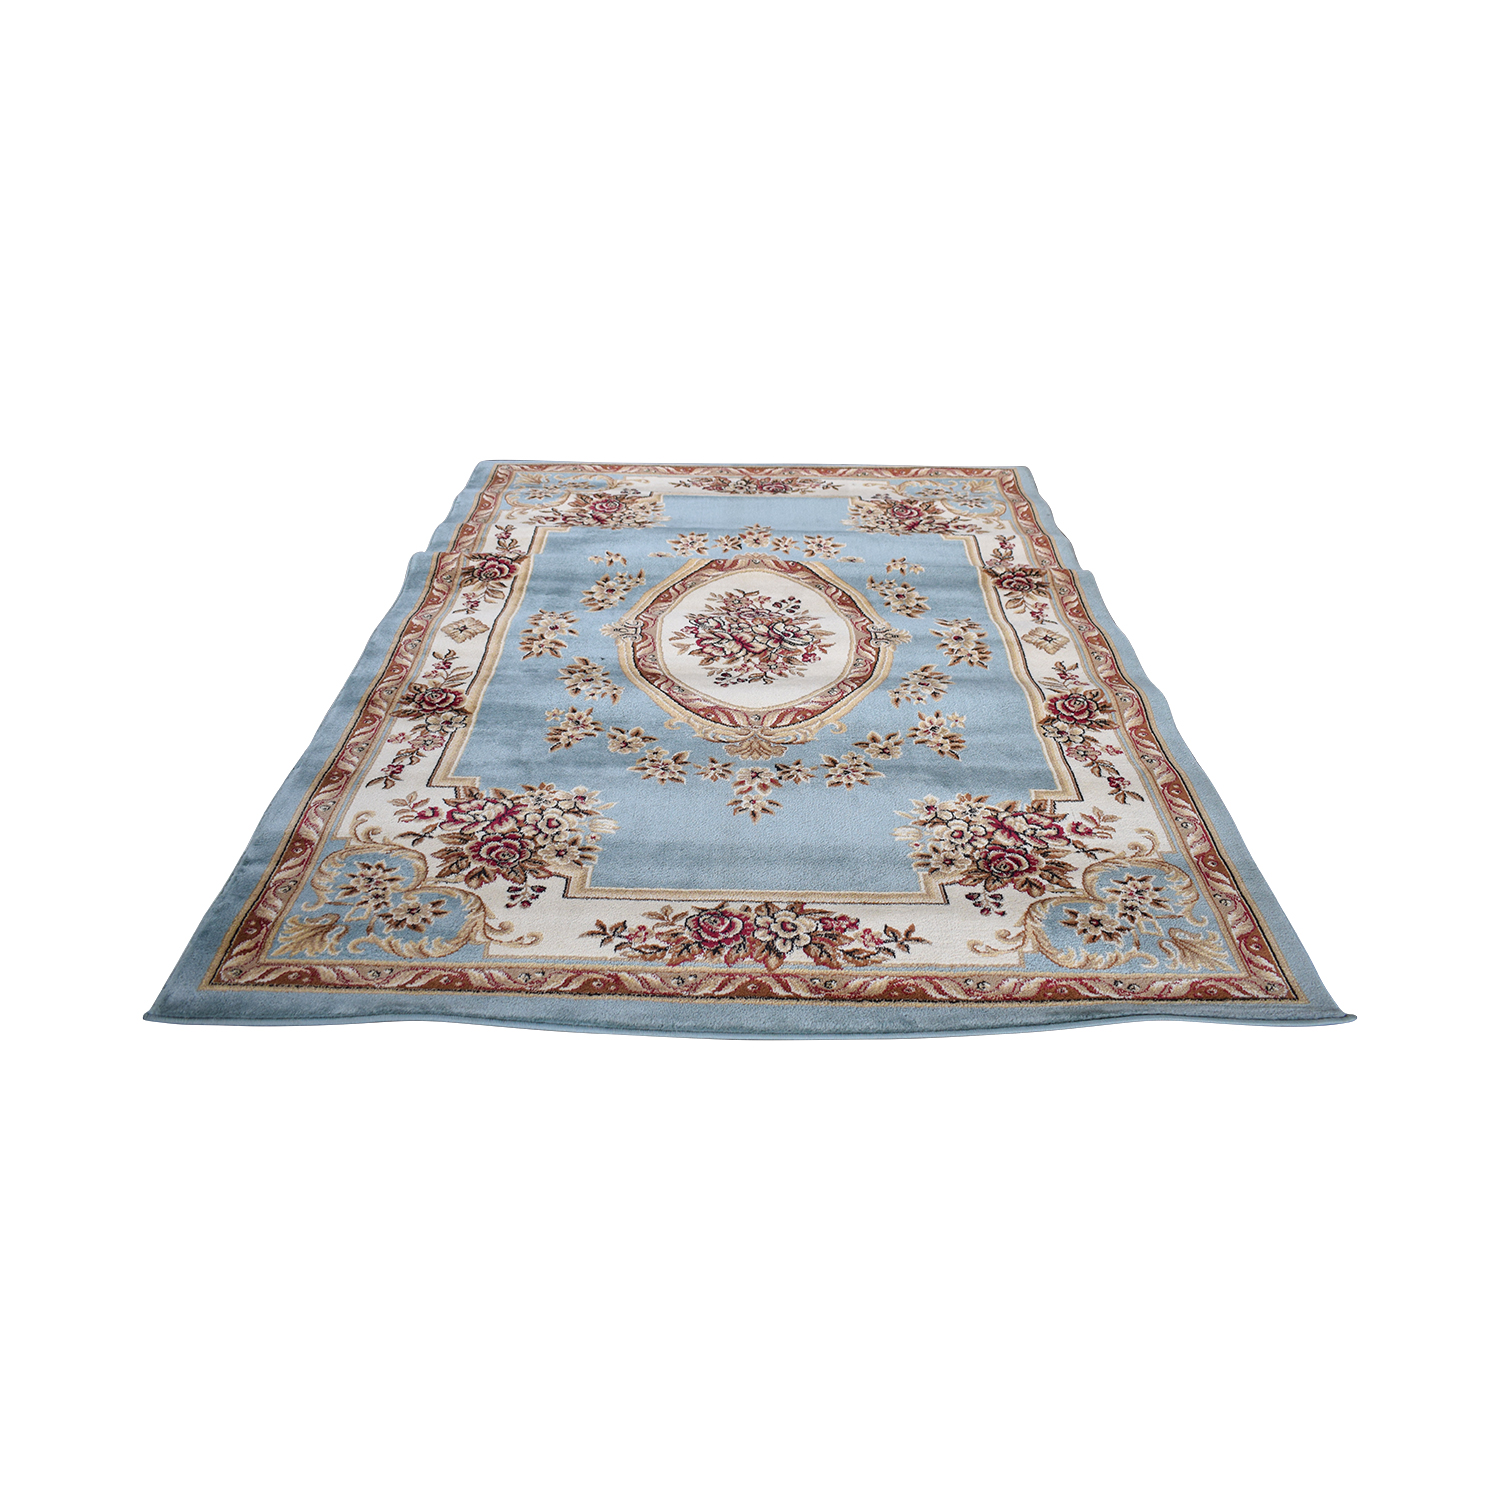 buy Well Woven Well Woven Timeless Le Petit Palais Blue Floral Rug online